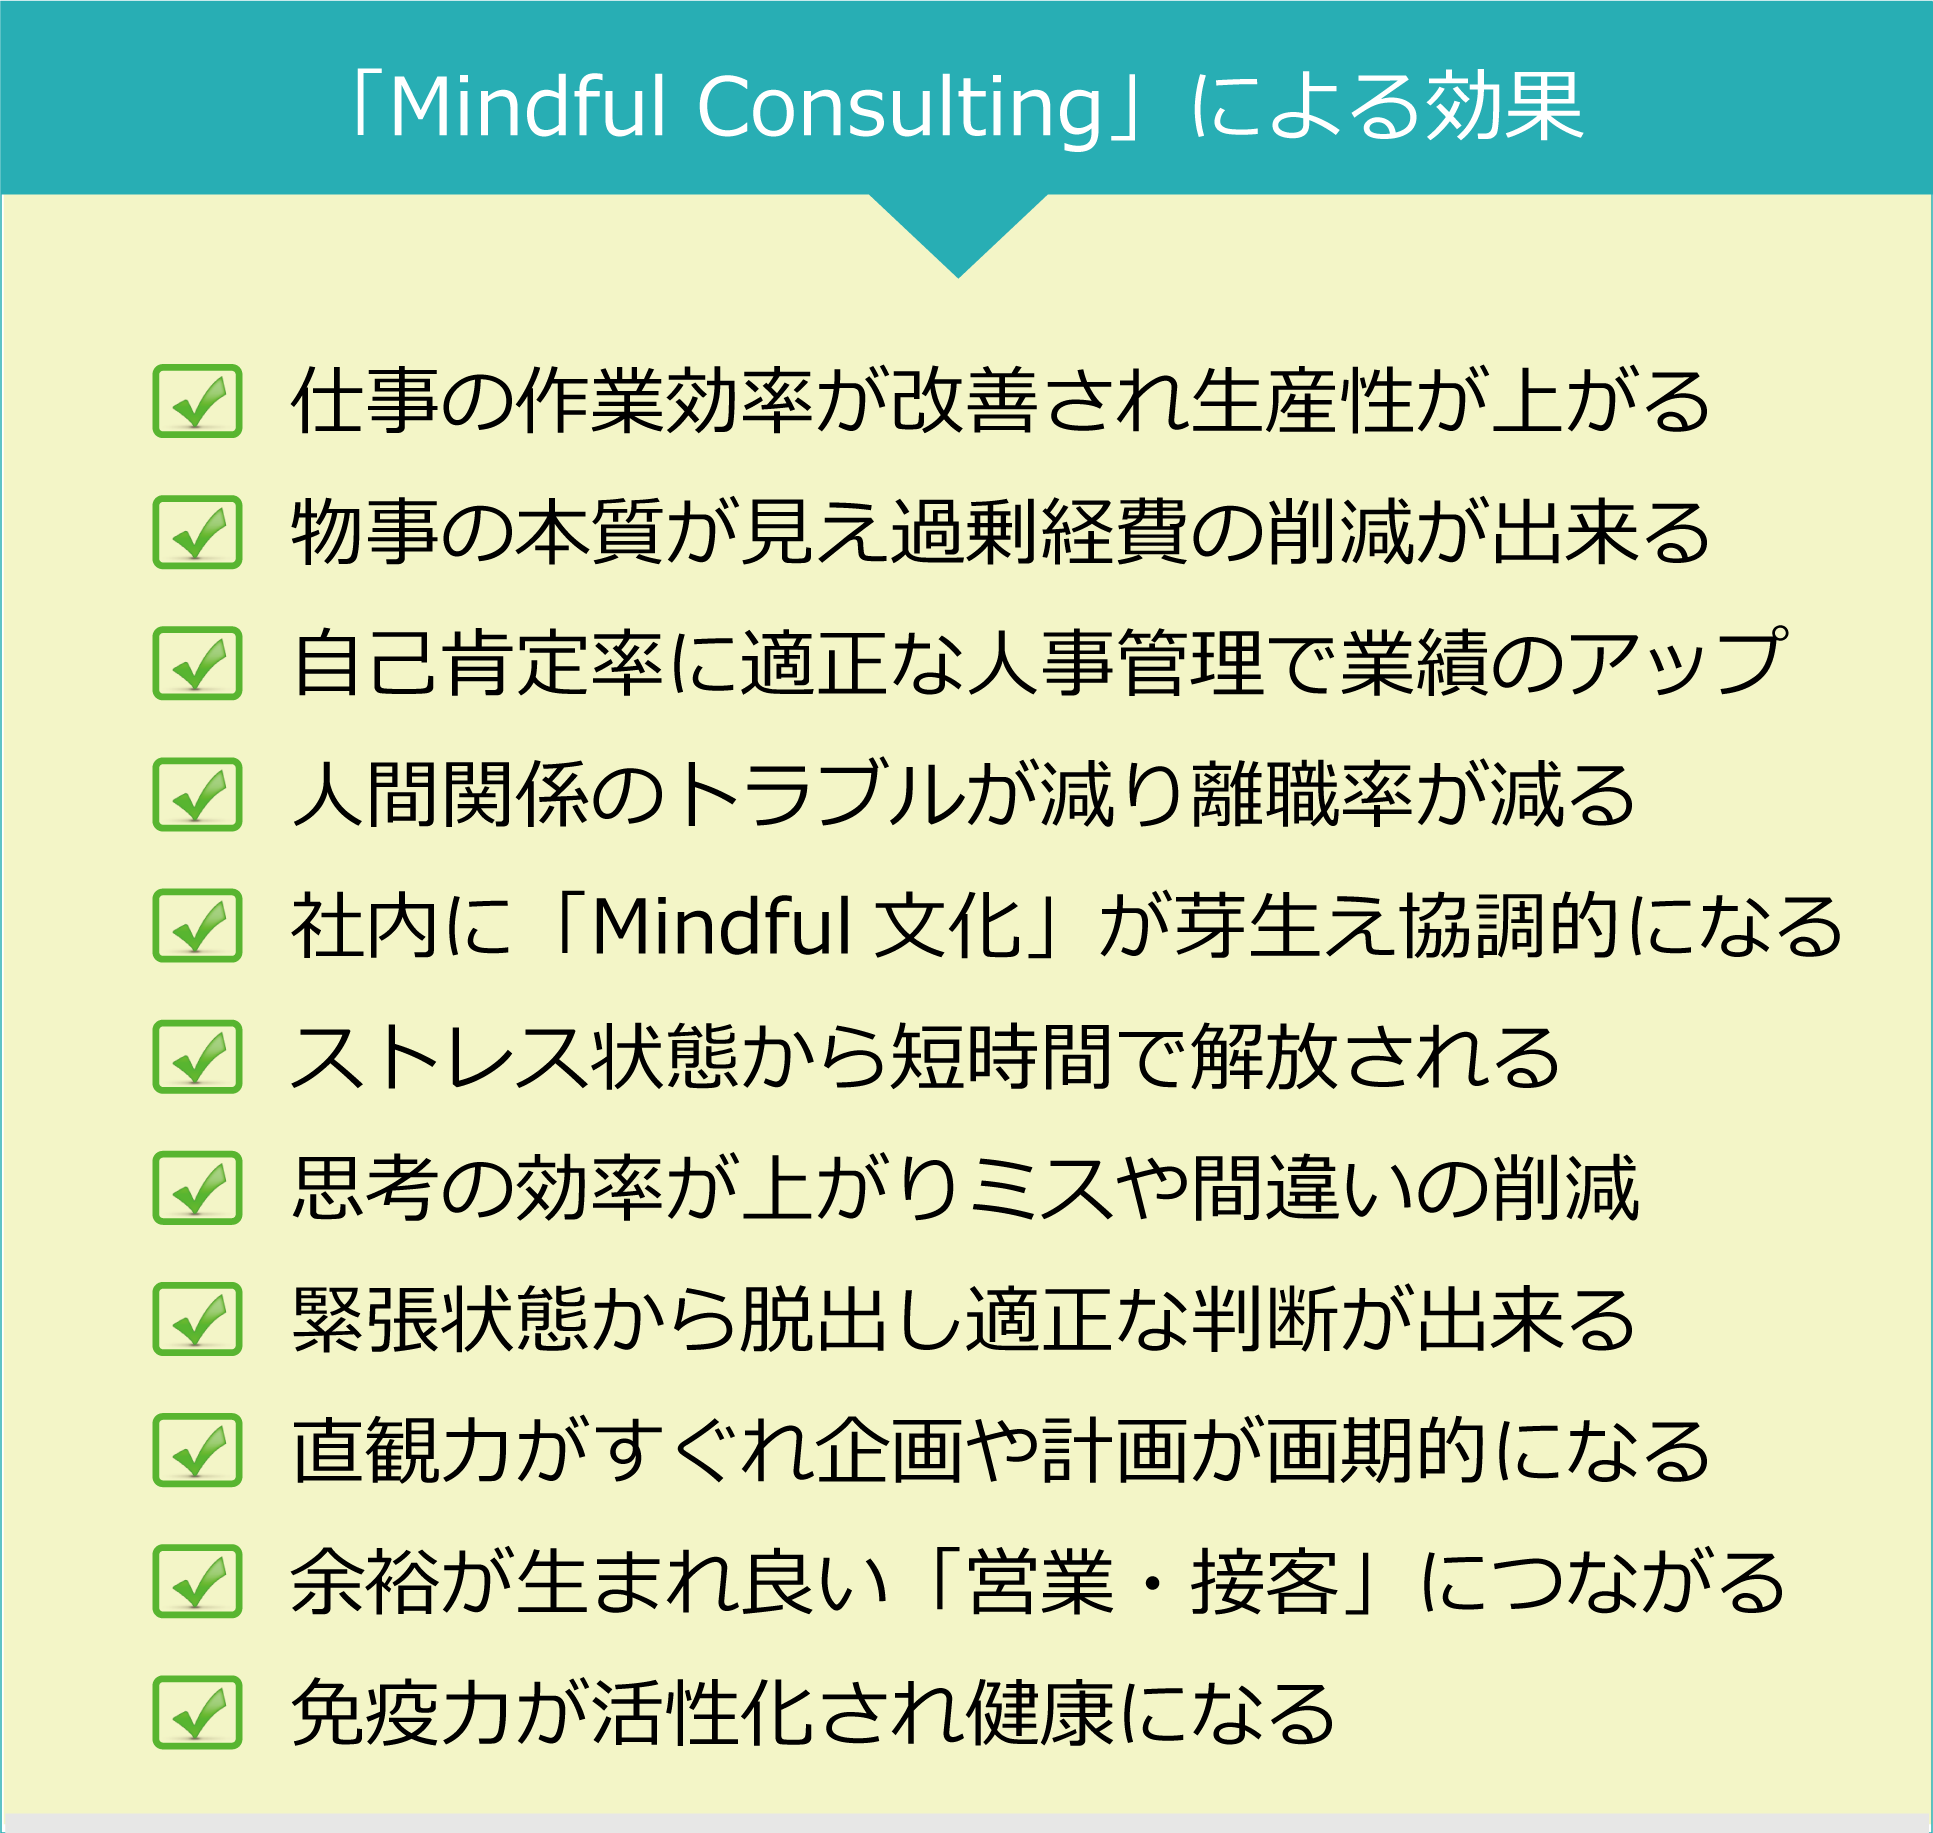 """mind07-1 <span style=""""font-size: 24pt; color:#E2faeb4;"""">企業コンサルティング</span>"""